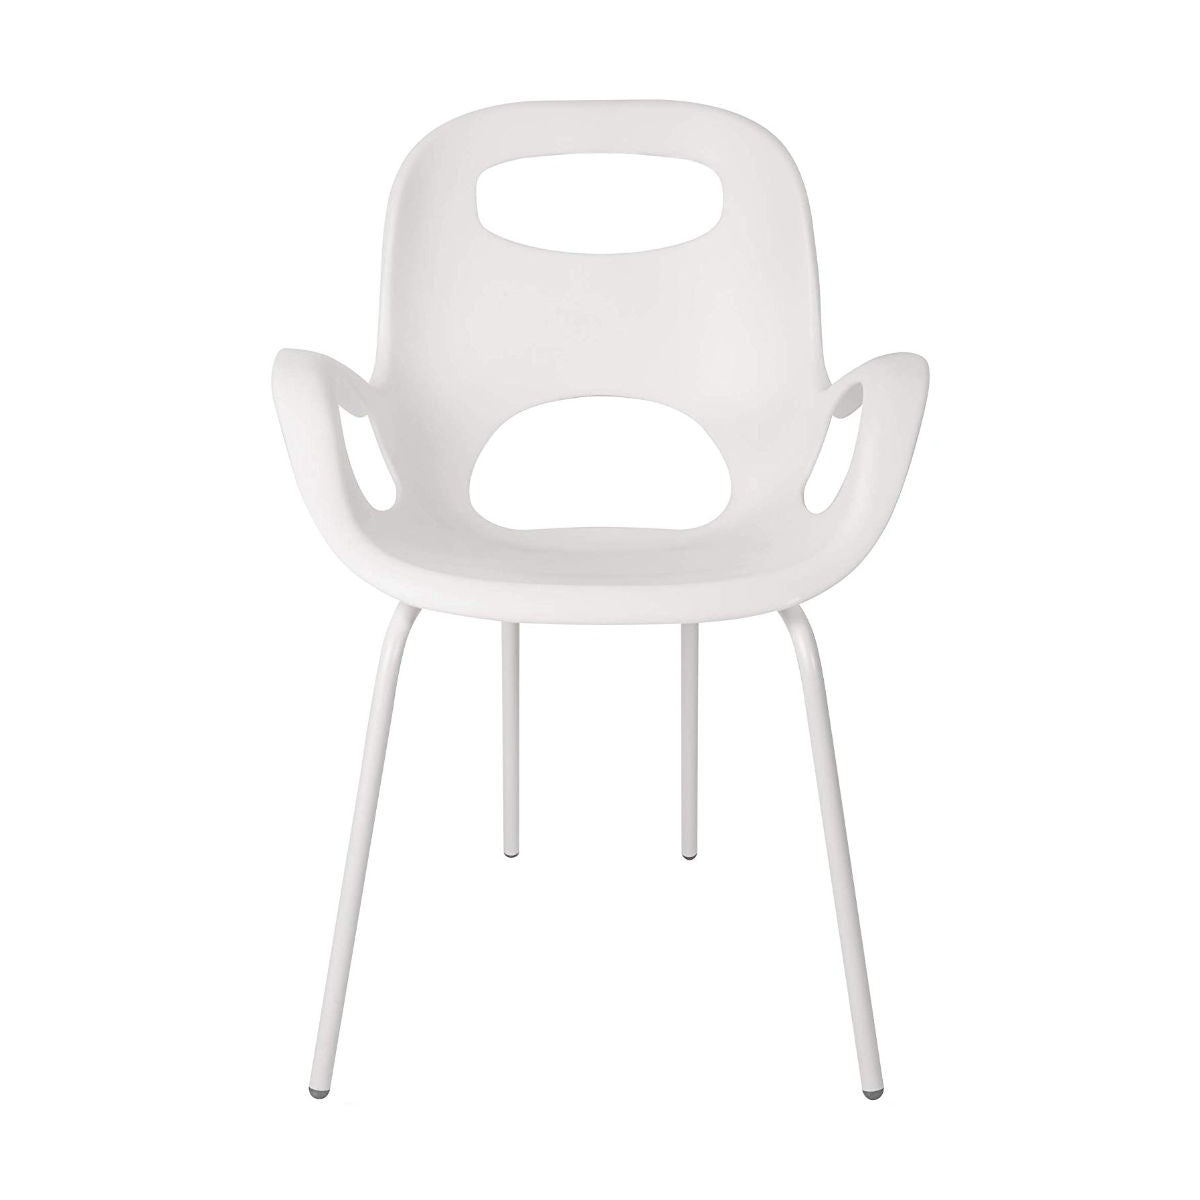 Umbra Oh Chair, white